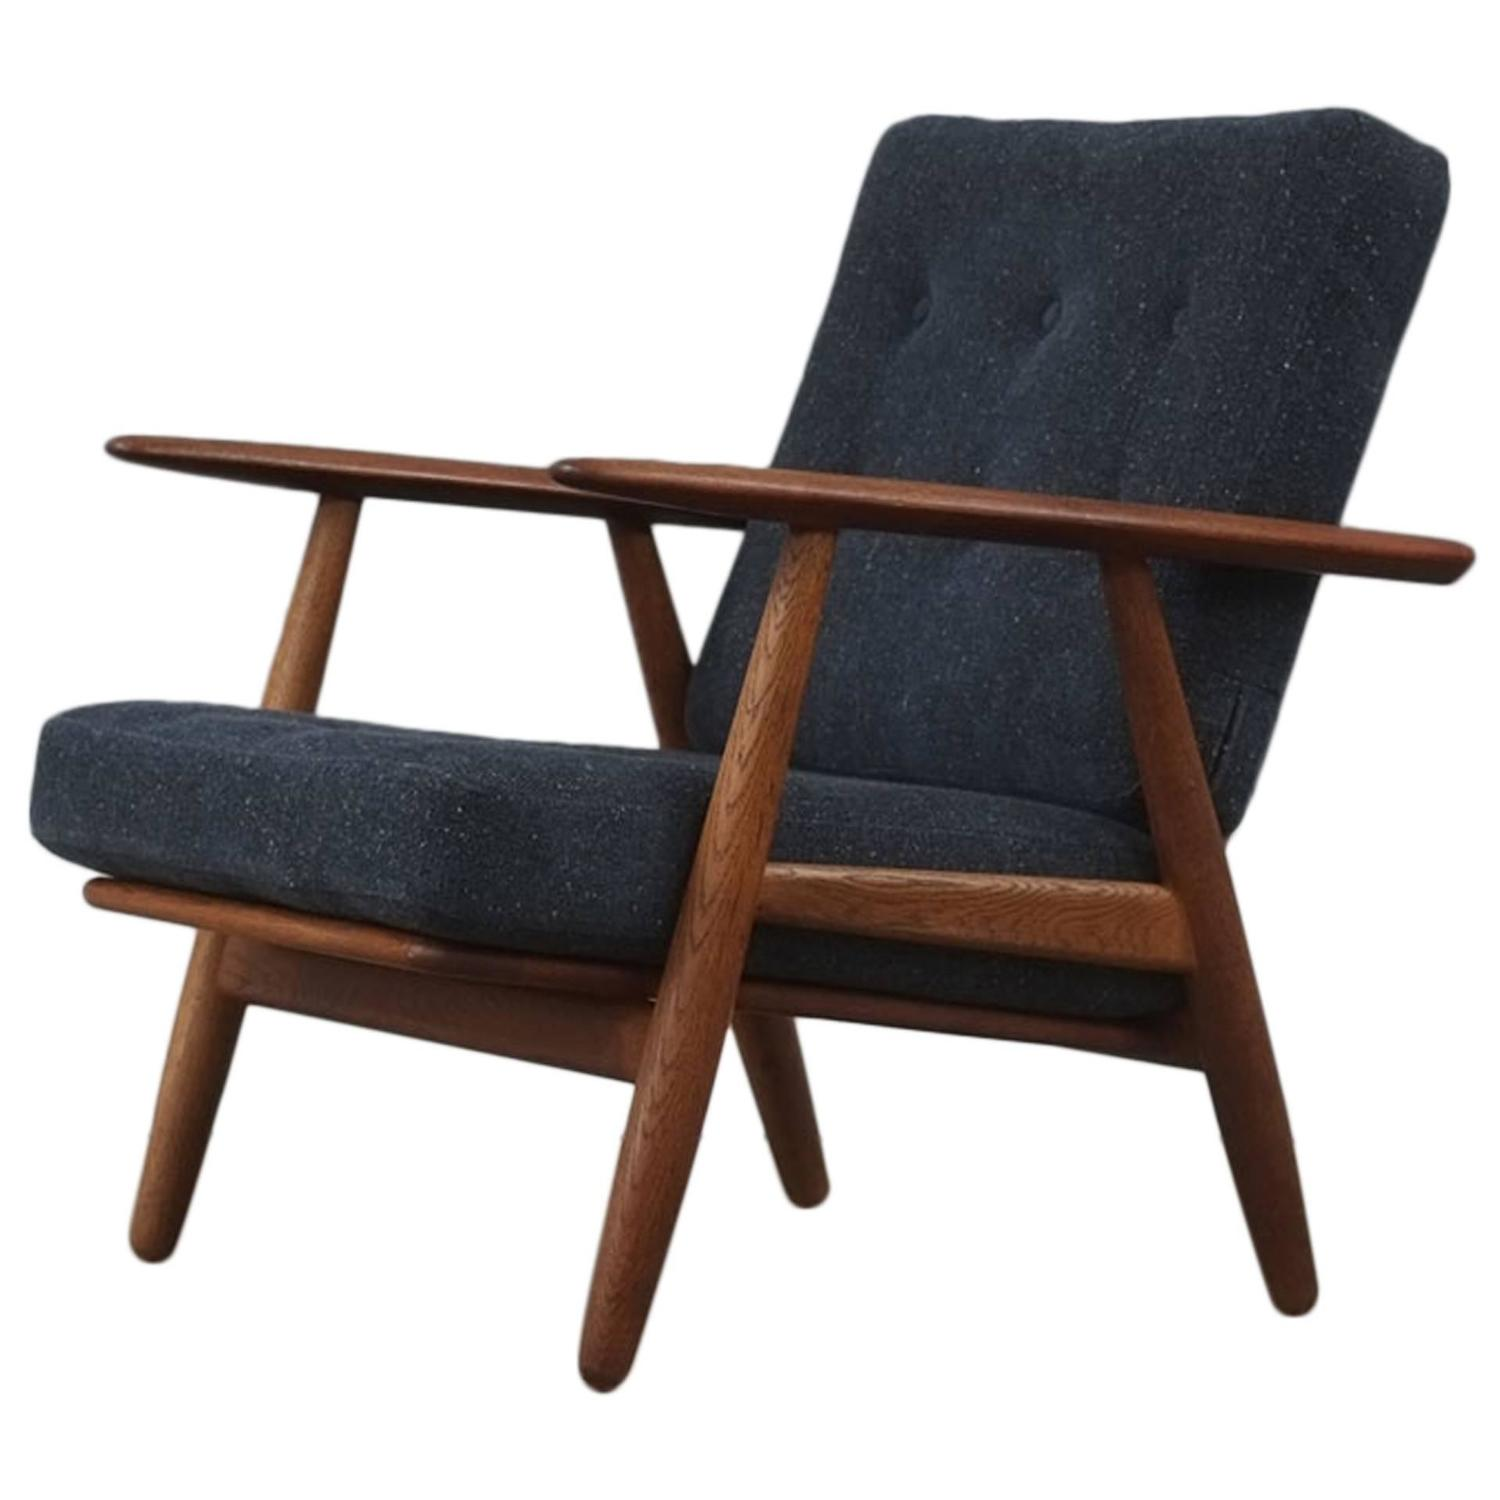 hans wegner cigar chair at 1stdibs. Black Bedroom Furniture Sets. Home Design Ideas